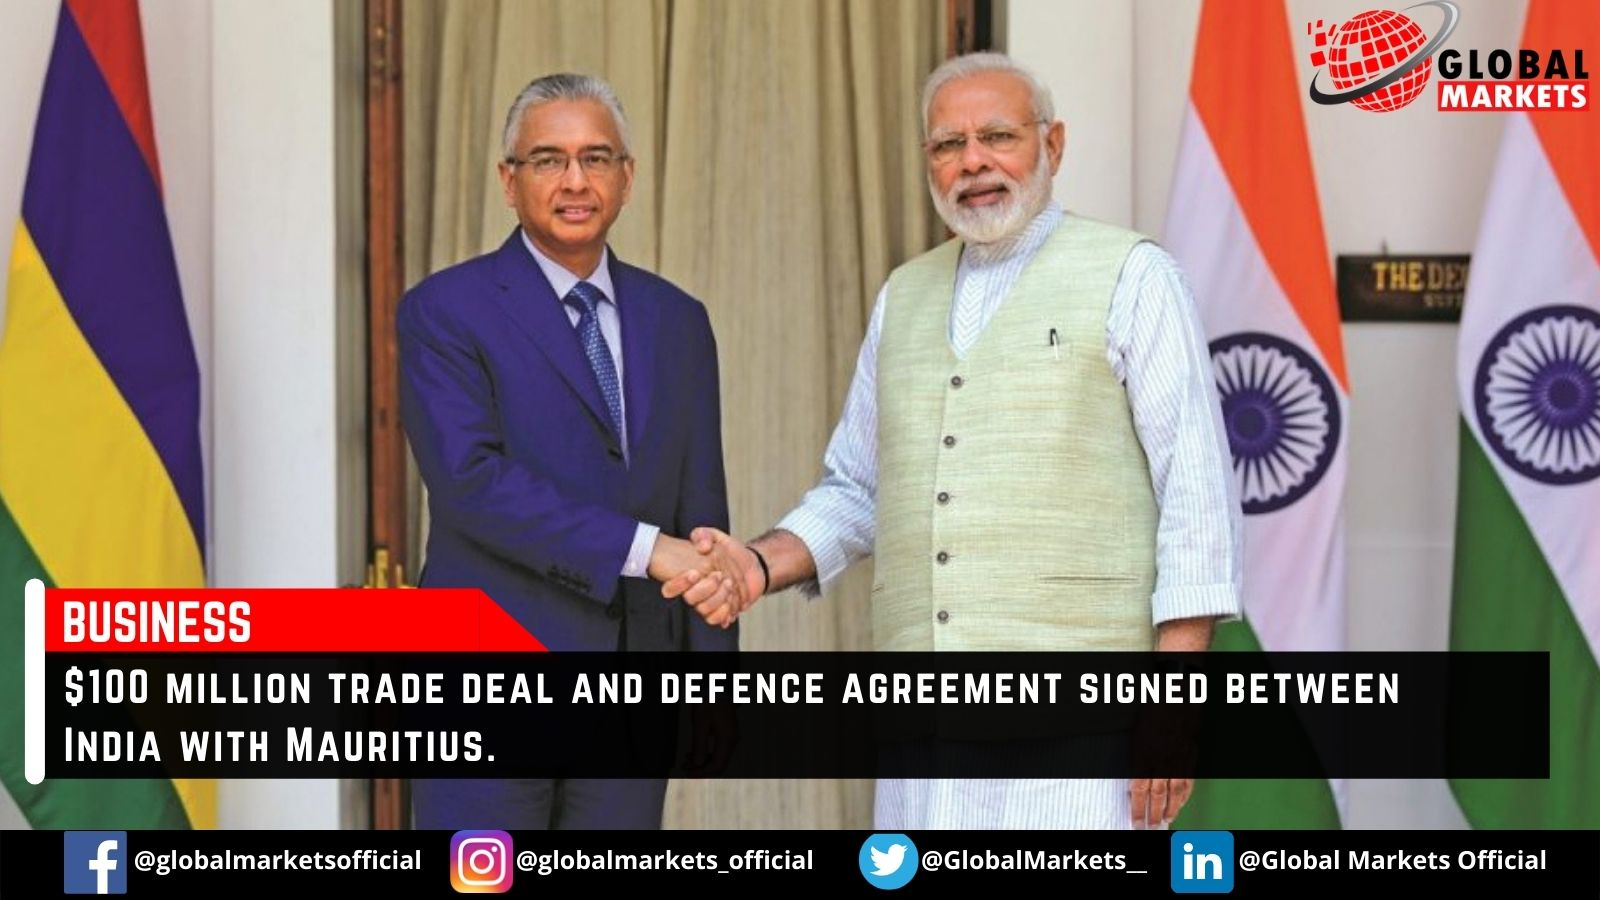 $100 million trade deal and defence agreement signed between India with Mauritius